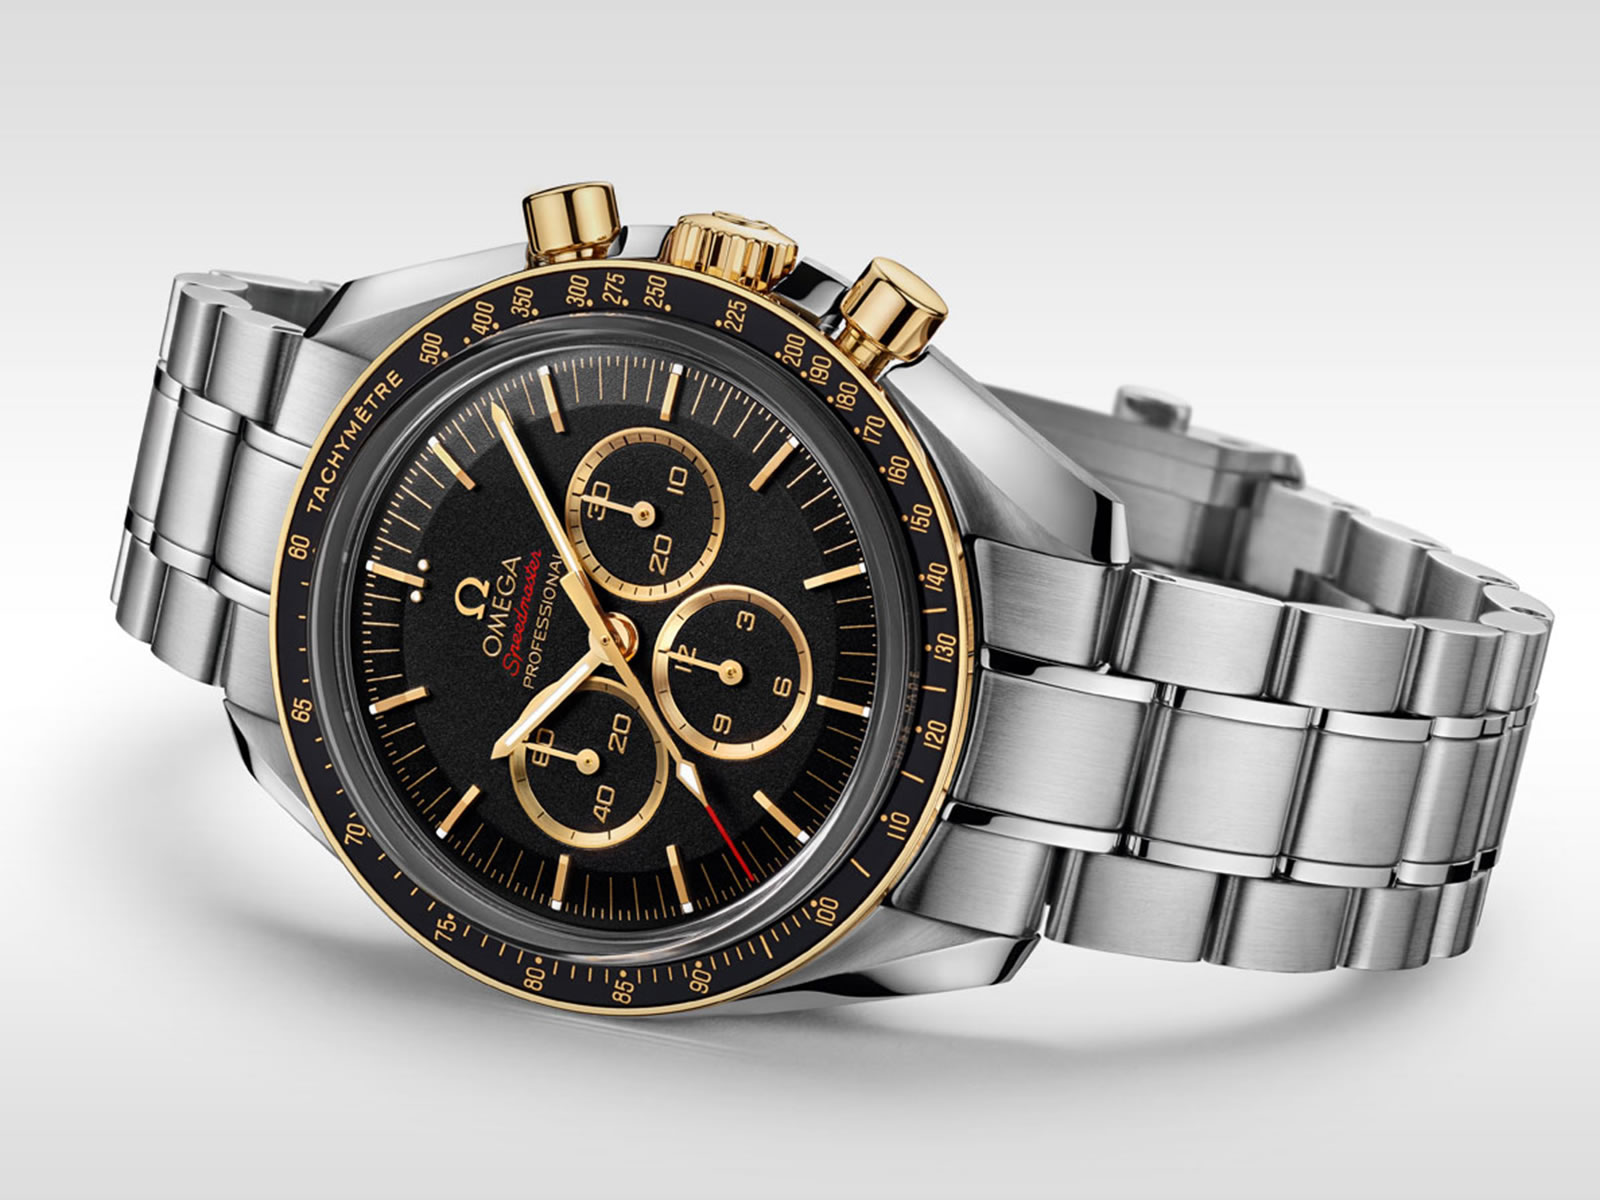 522-20-42-30-01-001-omega-olympic-games-2020-speedmaster-1-.jpg